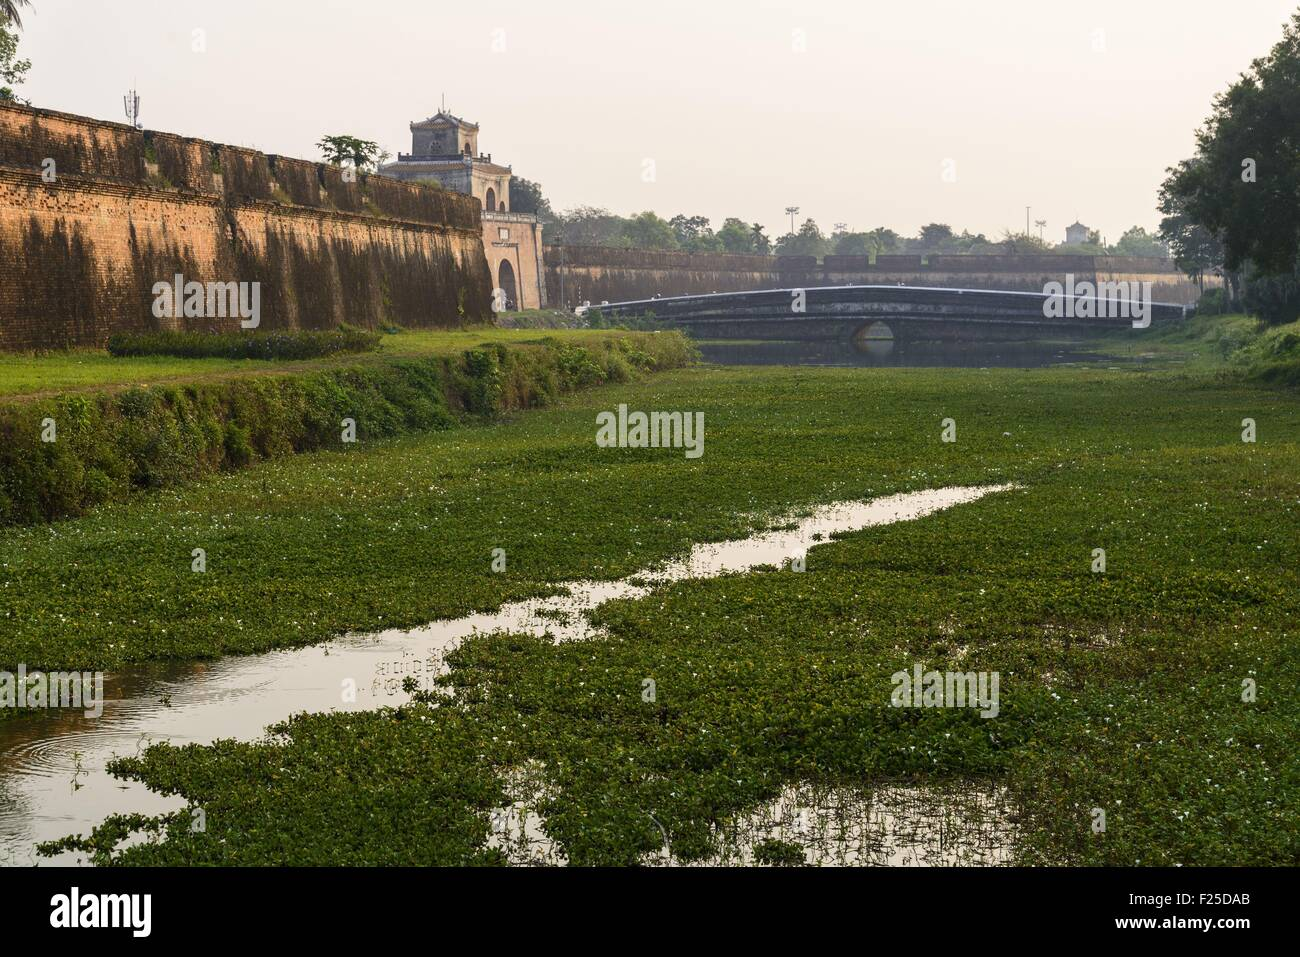 Vietnam, Thua Thien Hue province, Hue, the Imperial Cityl, listed as World Heritage site by UNESCO, the Citadel - Stock Image